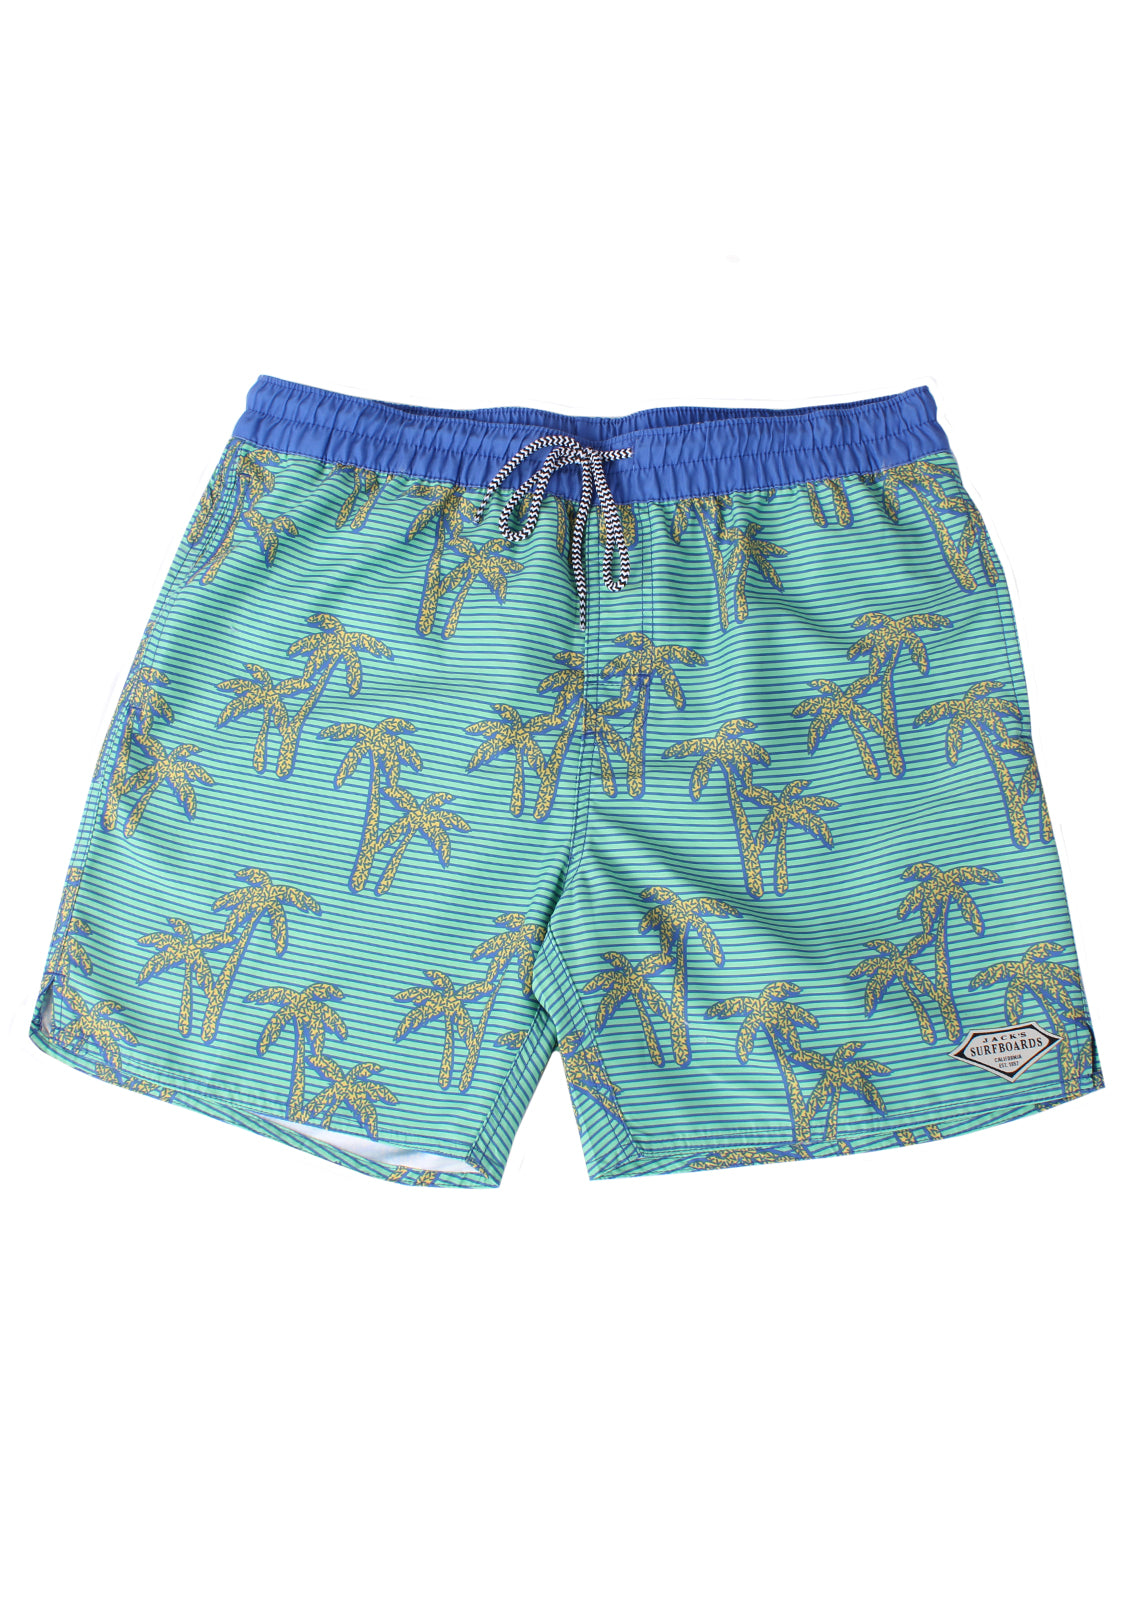 Jacks Surfboards DEEVO Boardshort